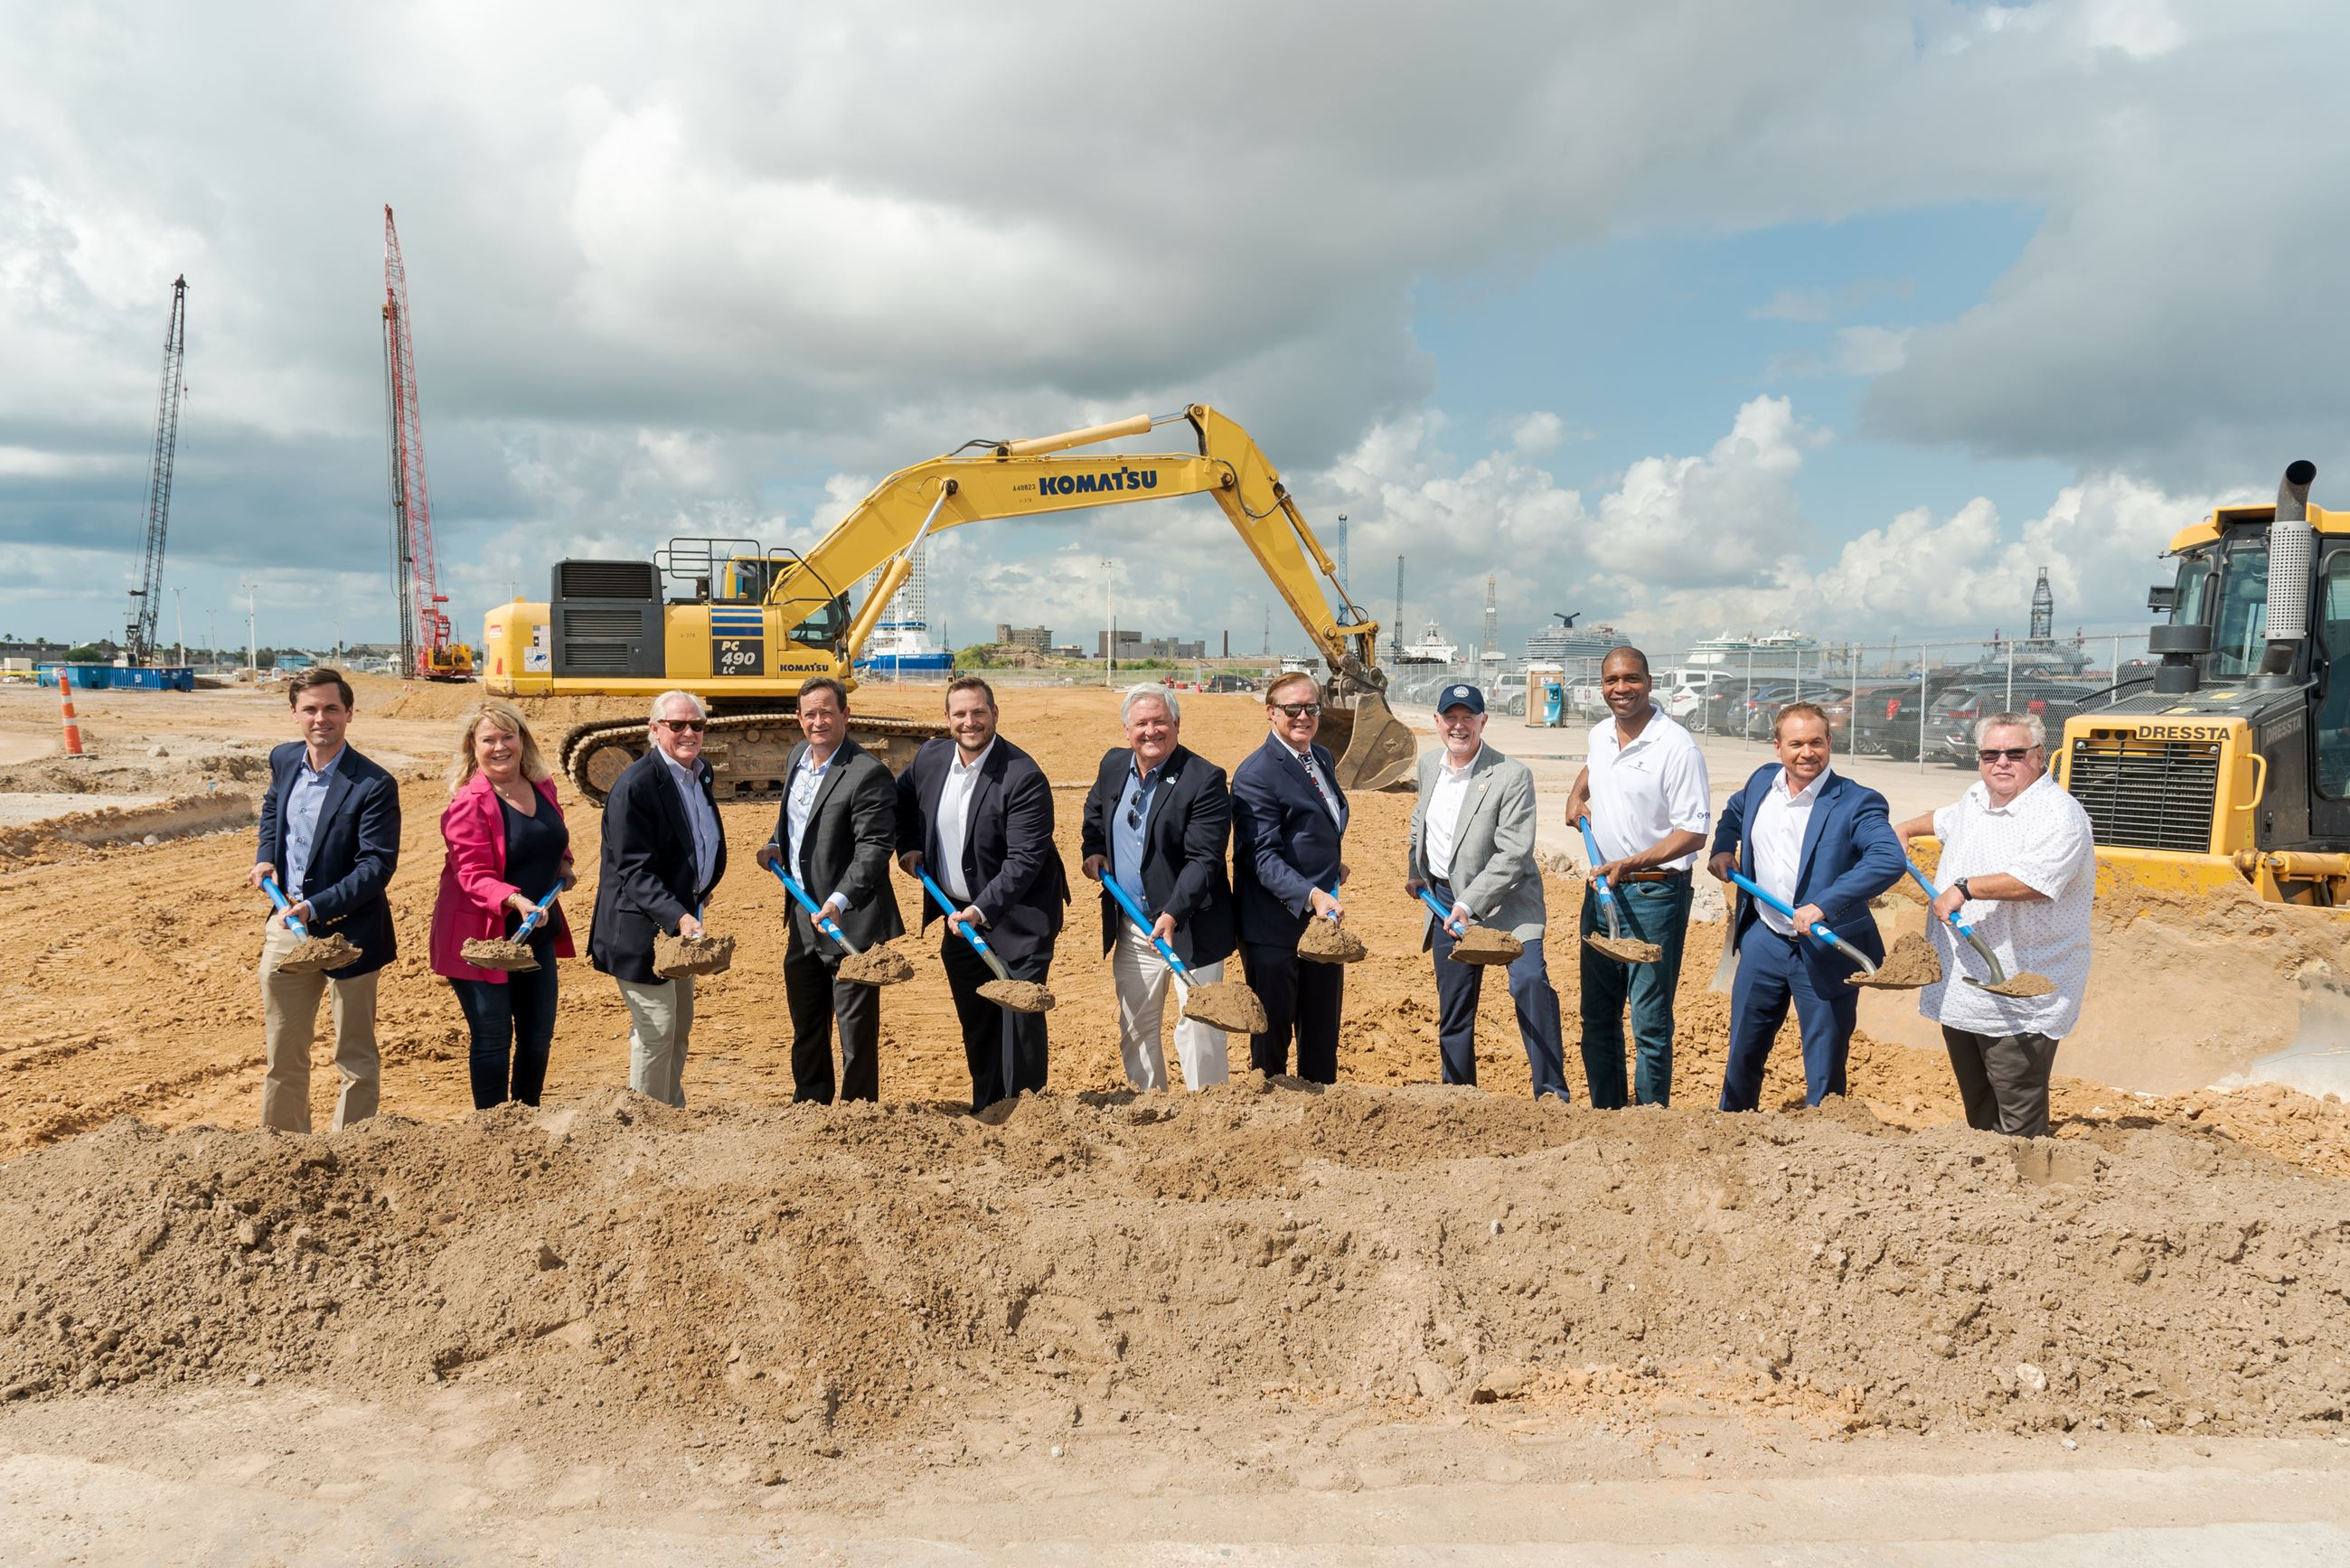 Federal, state, and local officials join Galveston Wharves Port Director and CEO Rodger Rees, Galveston Wharves Chairman Albert Shannon,Royal Caribbean International V.P. of Destination Development Joshua Carroll,and other industry leaders in turning the first sod during a groundbreaking ceremony held at the Port of Galveston's Pier 10 on Aug. 14 to mark the start of construction on a $125 million new state-of-the-art cruise terminal  (August 2021)